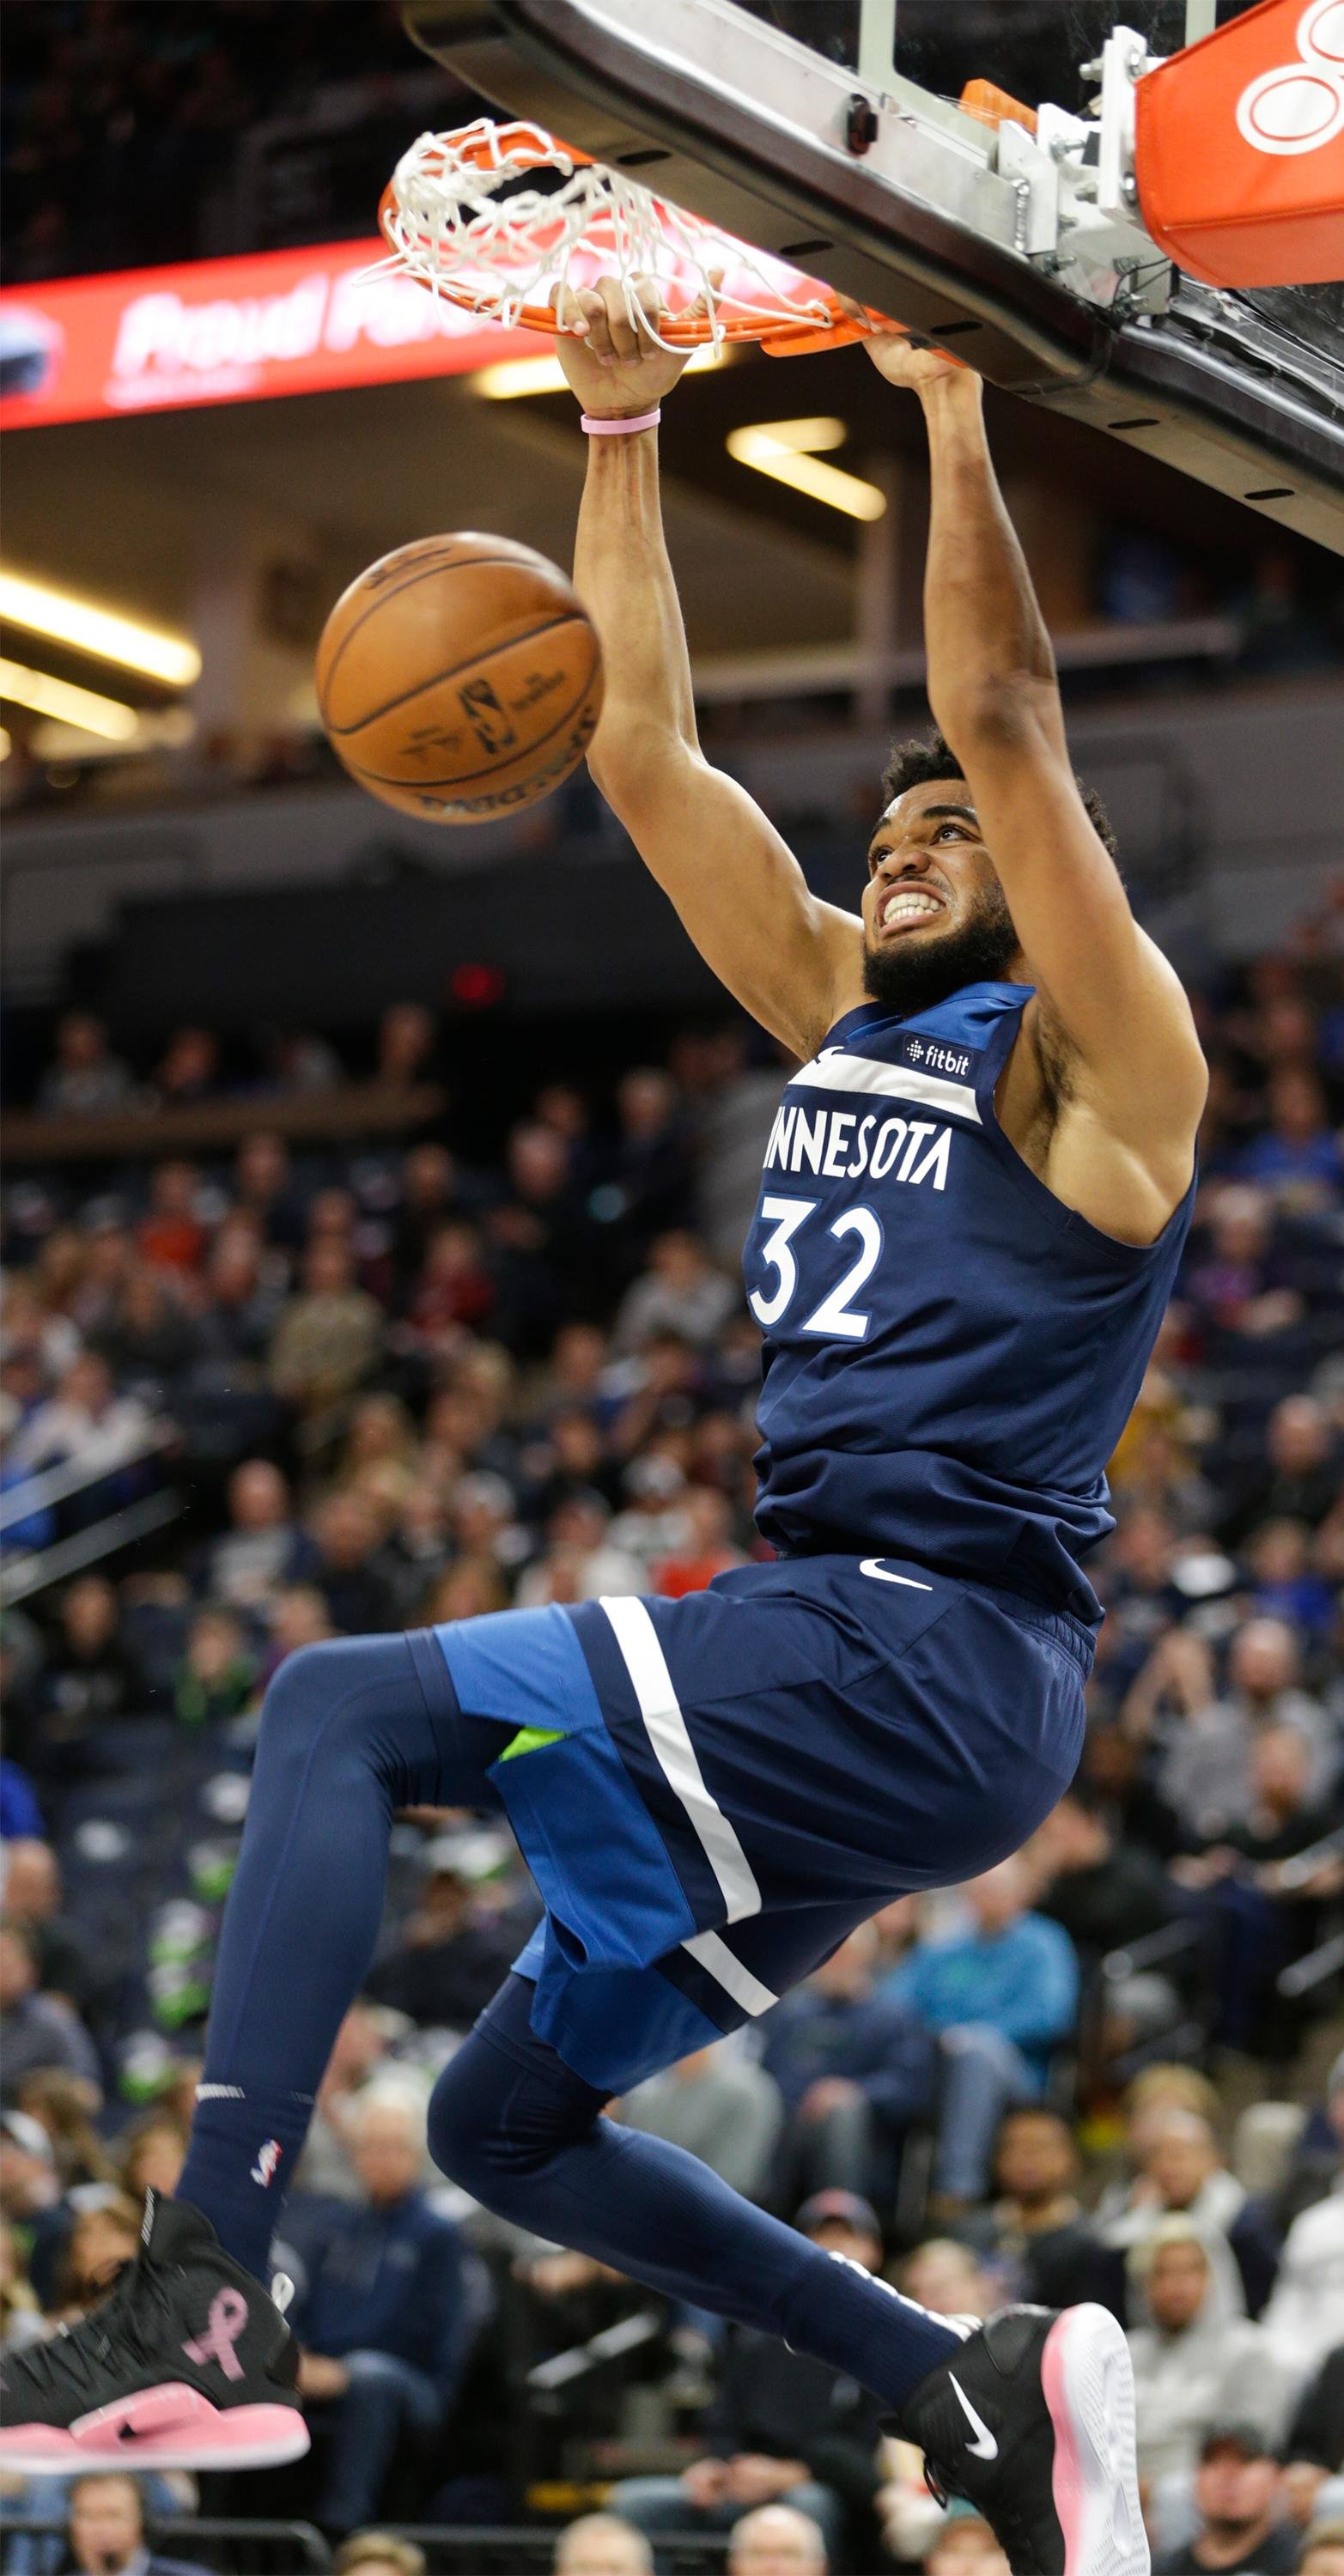 Minnesota Timberwolves center Karl-Anthony Towns (32) dunks during the first half of a NBA basketball game against the Oklahoma City Thunder Sunday, April 7, 2019, in Minneapolis. Towns finished with a game-high 53 points as Oklahoma won 132-126. (AP Photo/Paul Battaglia)